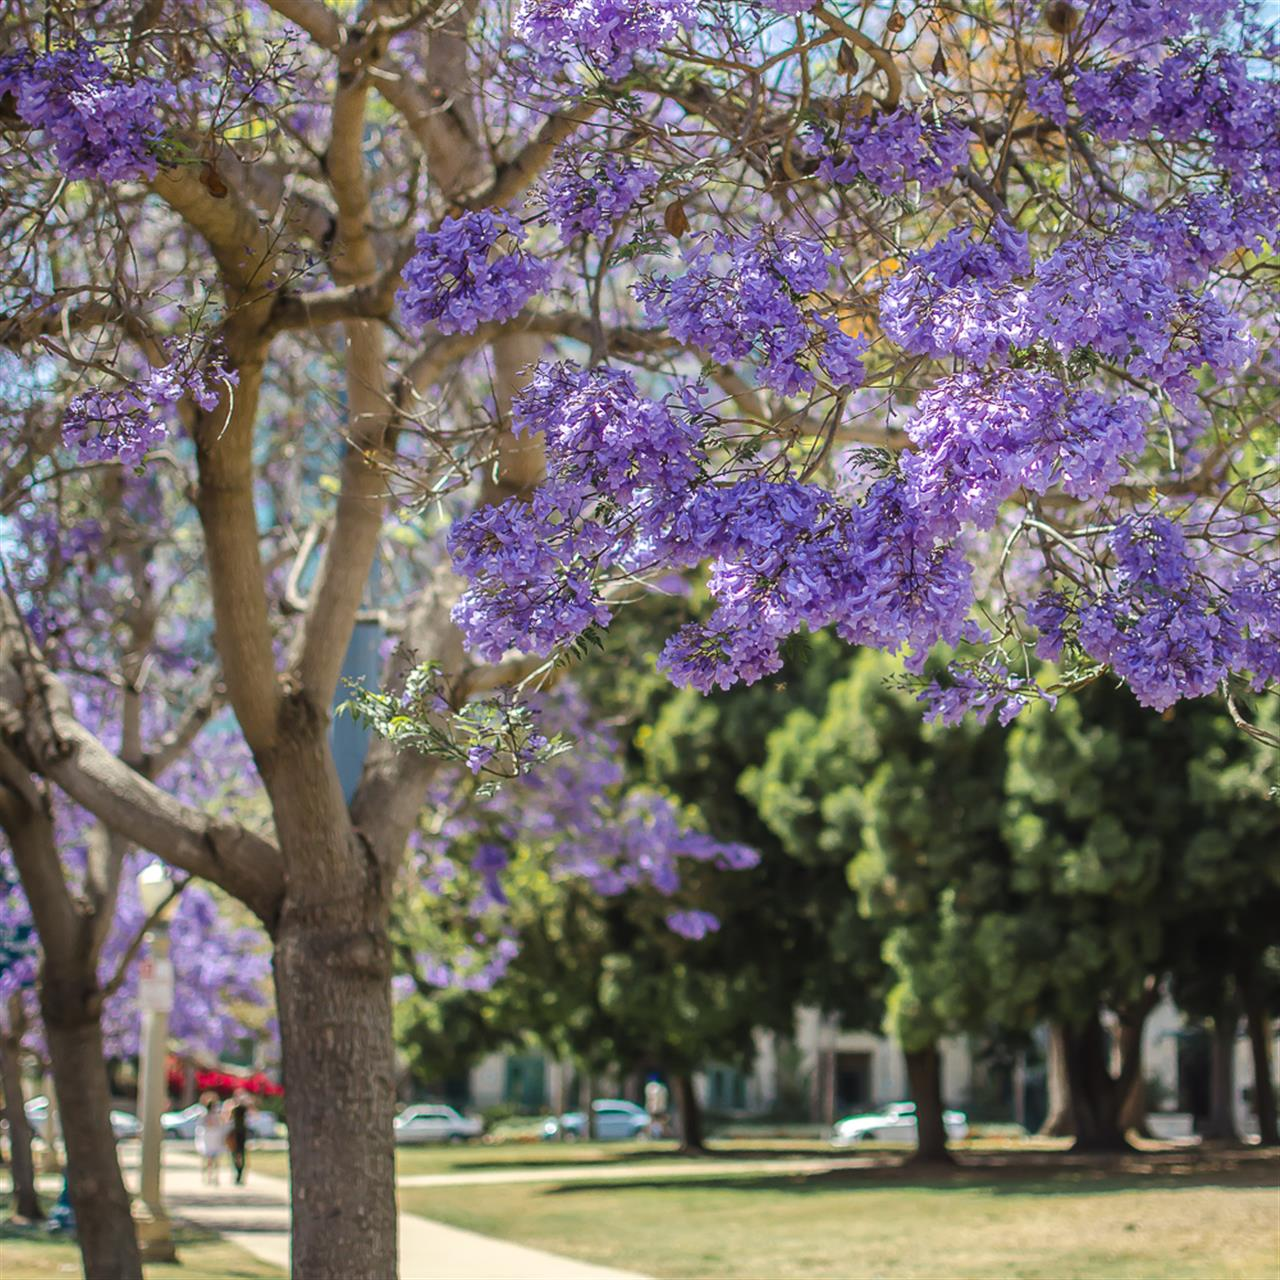 San Diego Jacaranda Trees aka the official tree of the city, in bloom in Balboa Park.